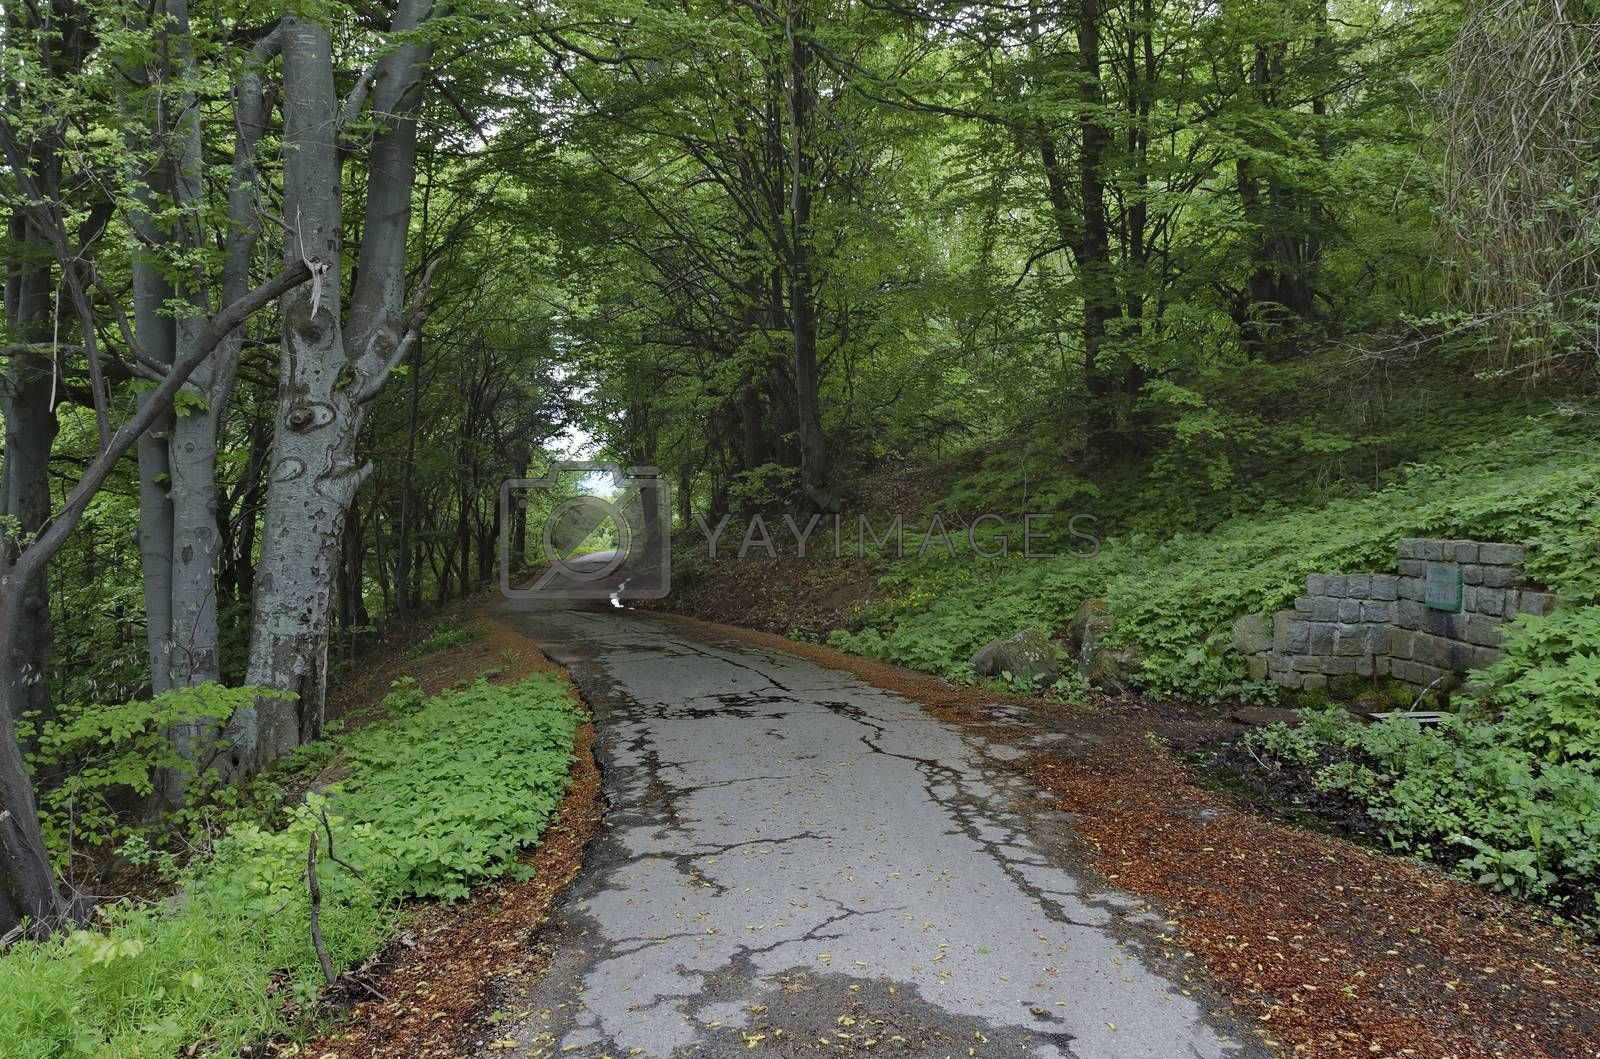 Panorama of picturesque forest with road and fountain